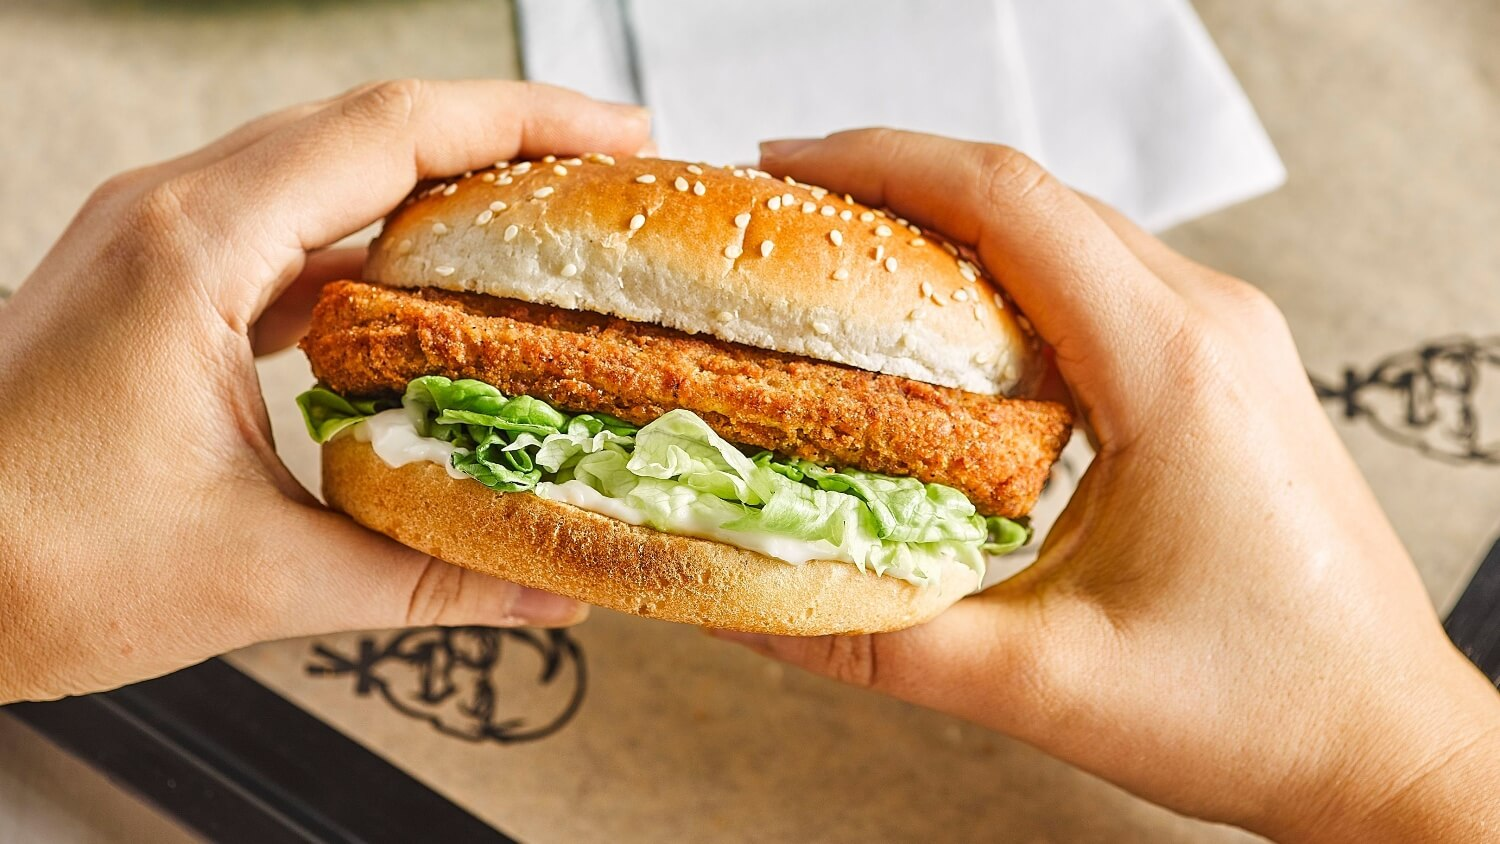 A Complete Guide to Vegan KFC